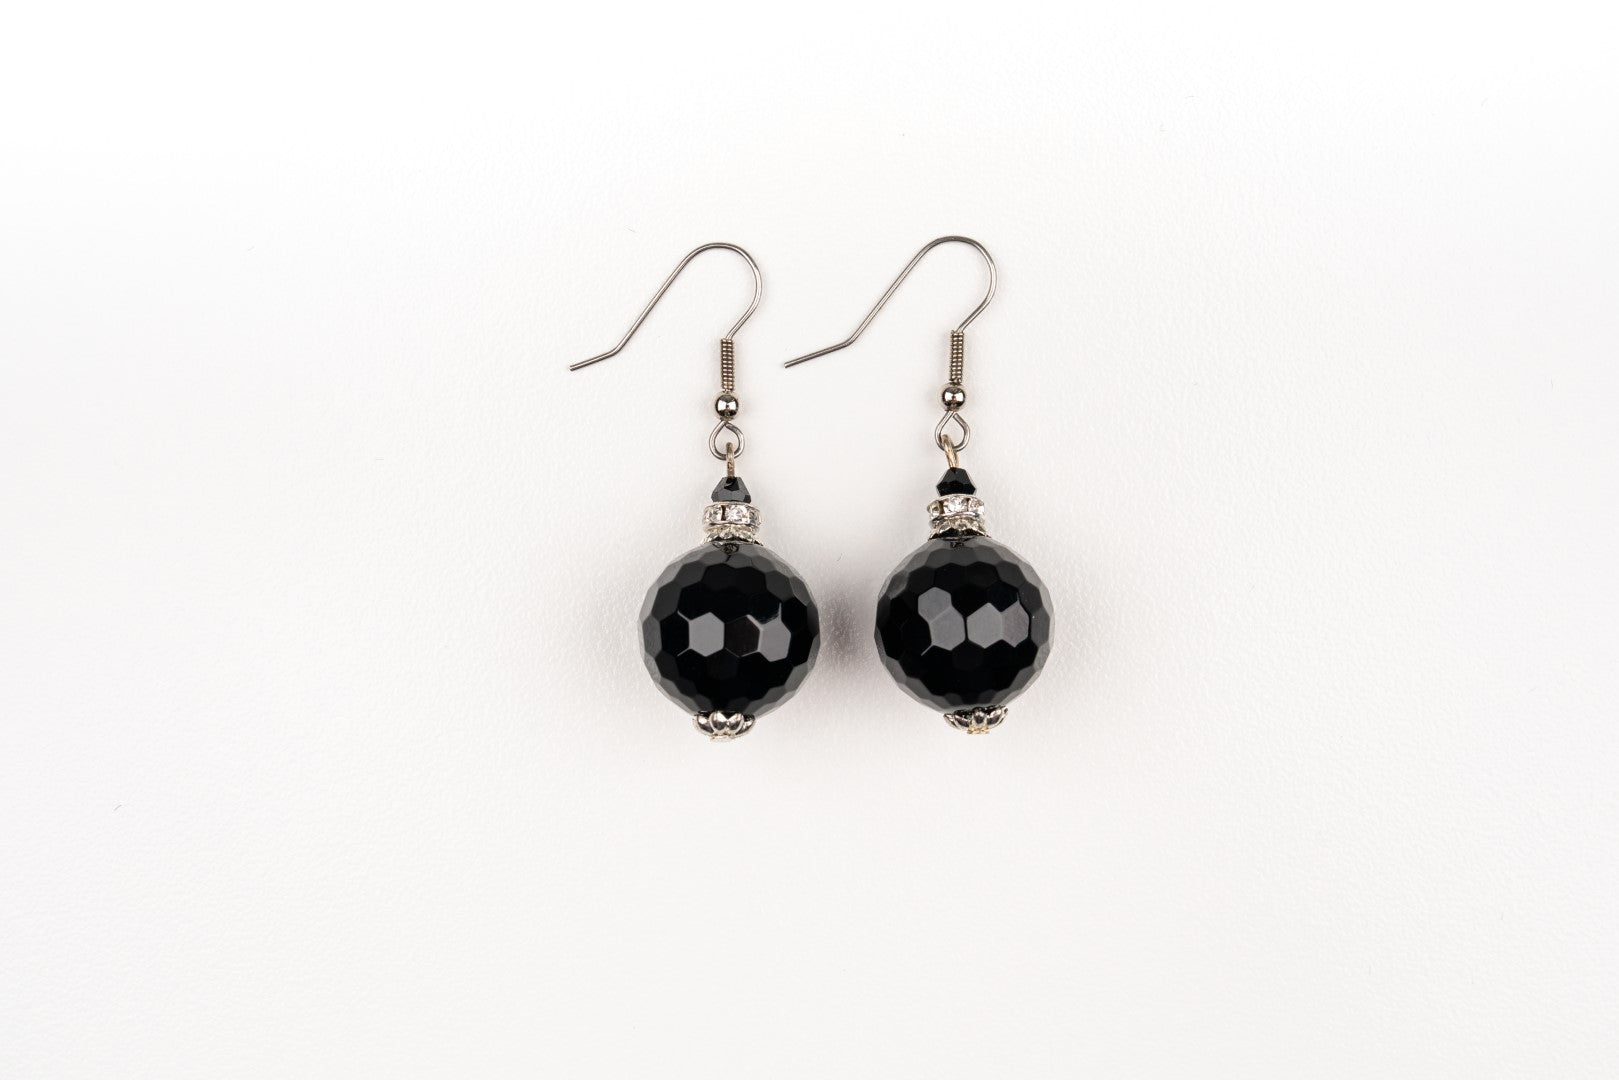 Carolily Finery earrings made from faceted onyx, and crystal rondelles